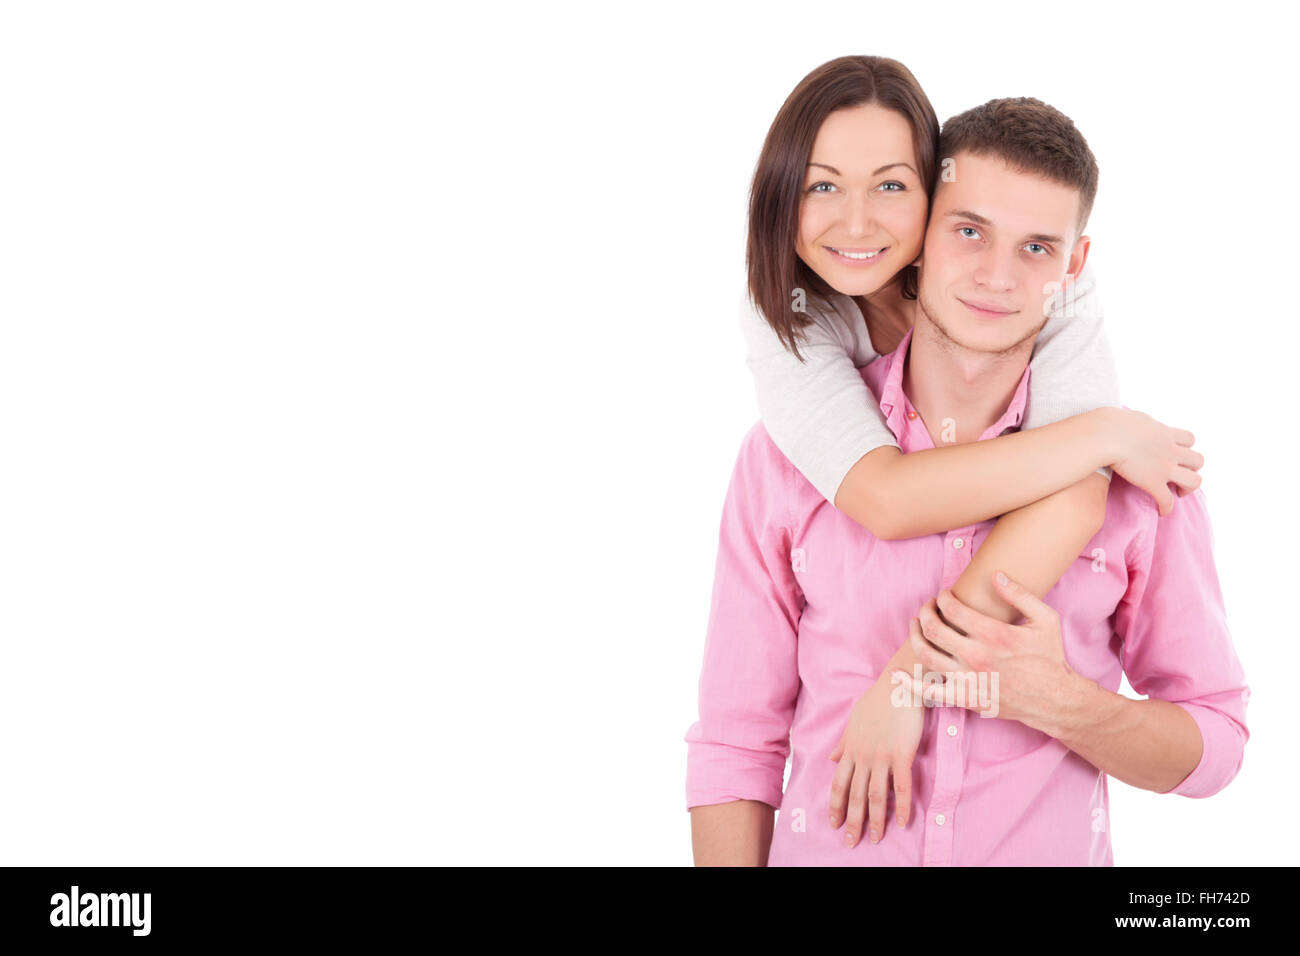 A young heterosexual couple, possibly just married, a wife and a husband standing together, hugging and holding - Stock Image